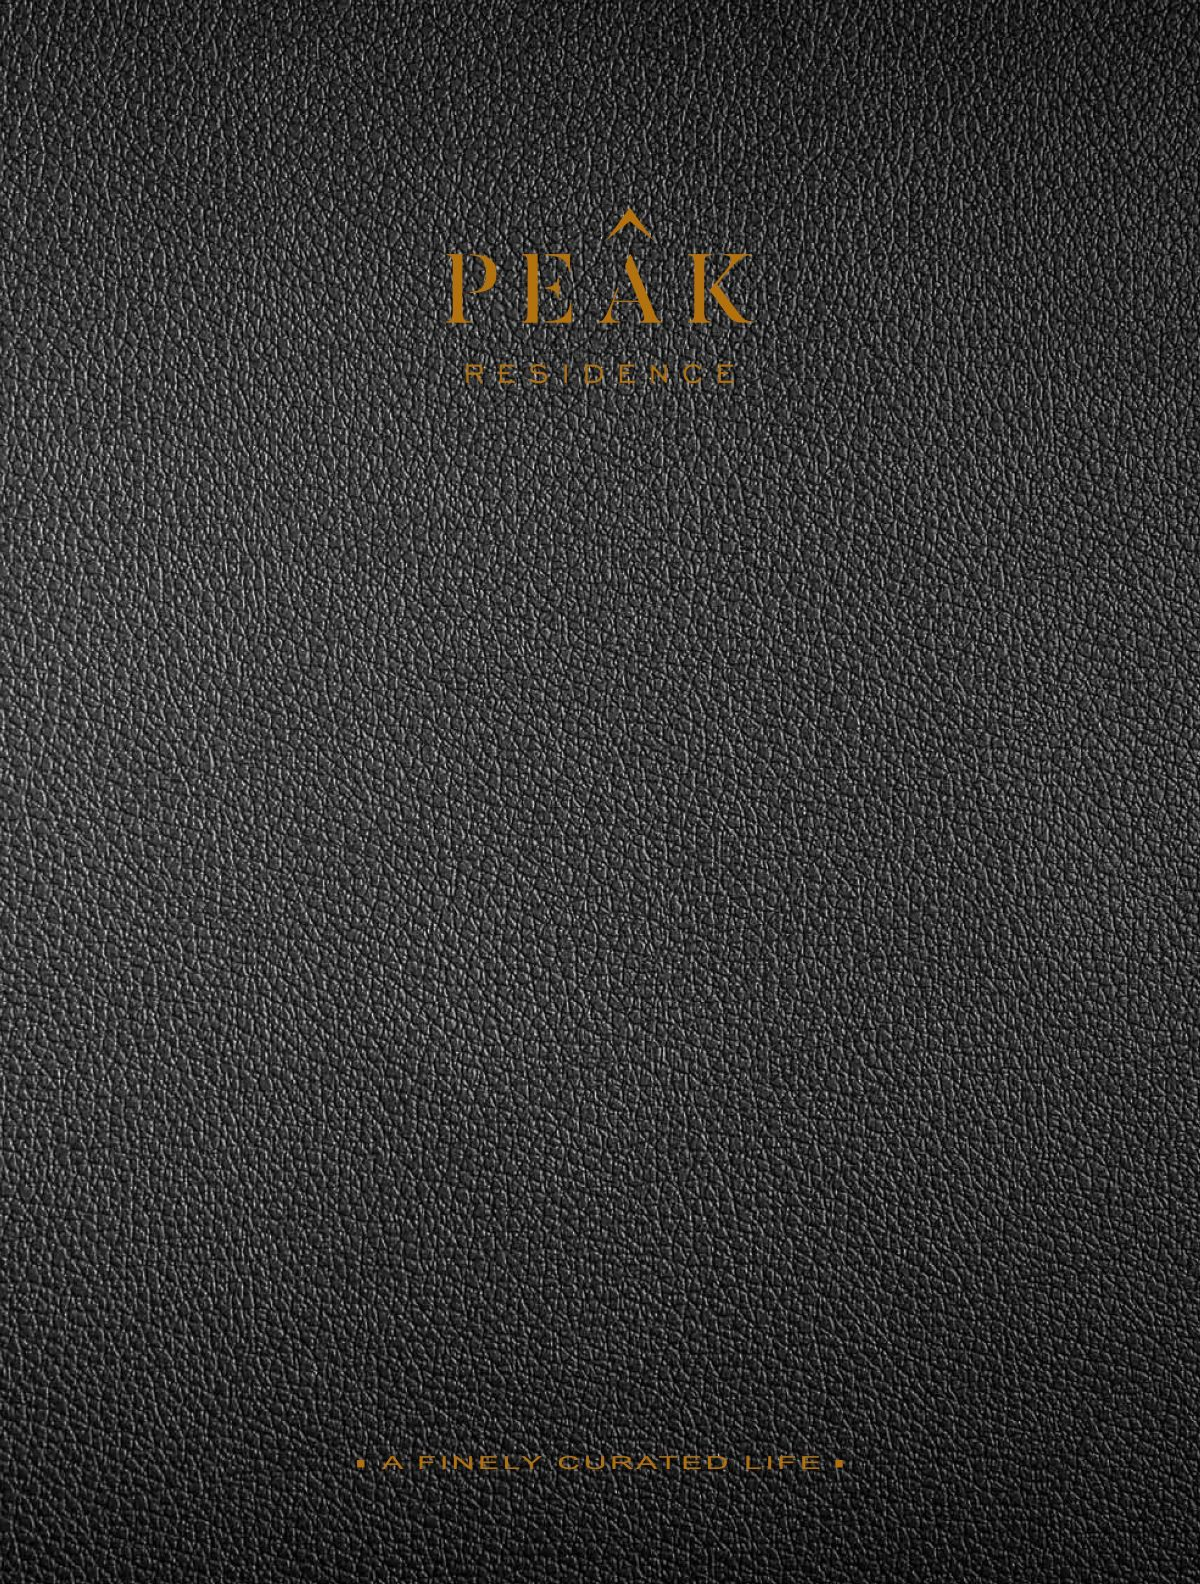 peak-residence-brochure-cover-page-singapore